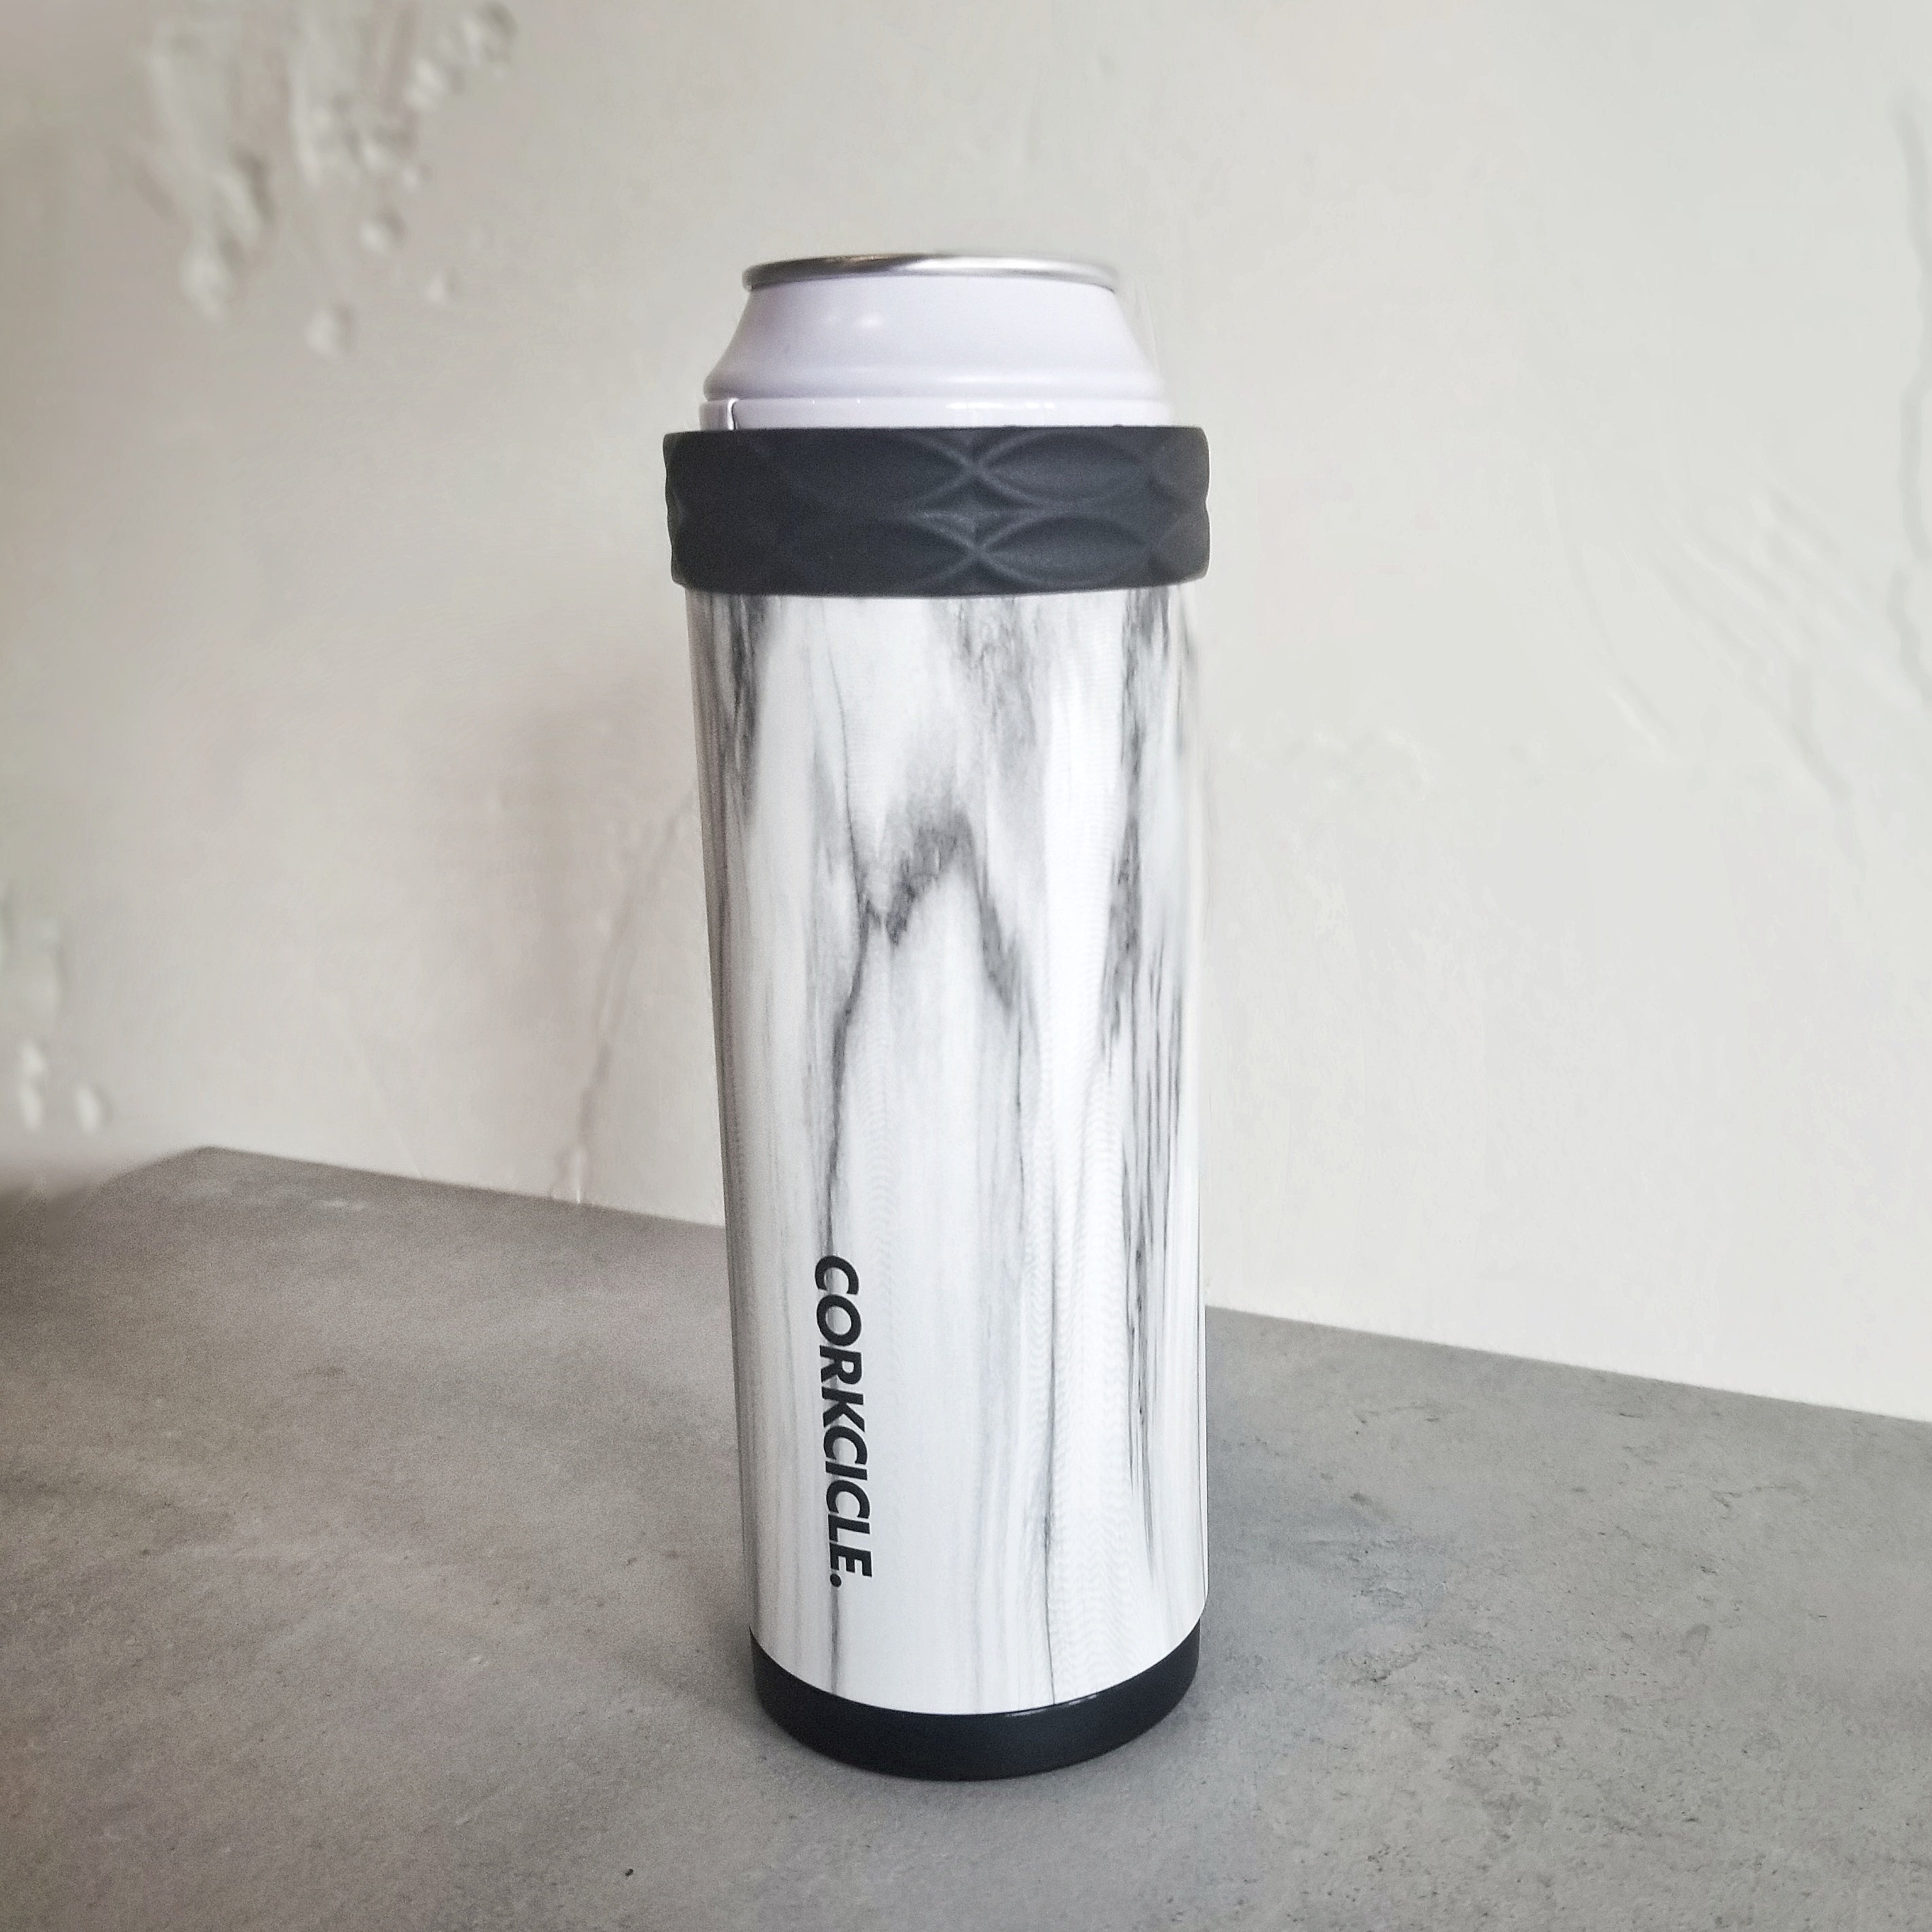 Corkcicle Slim Artican